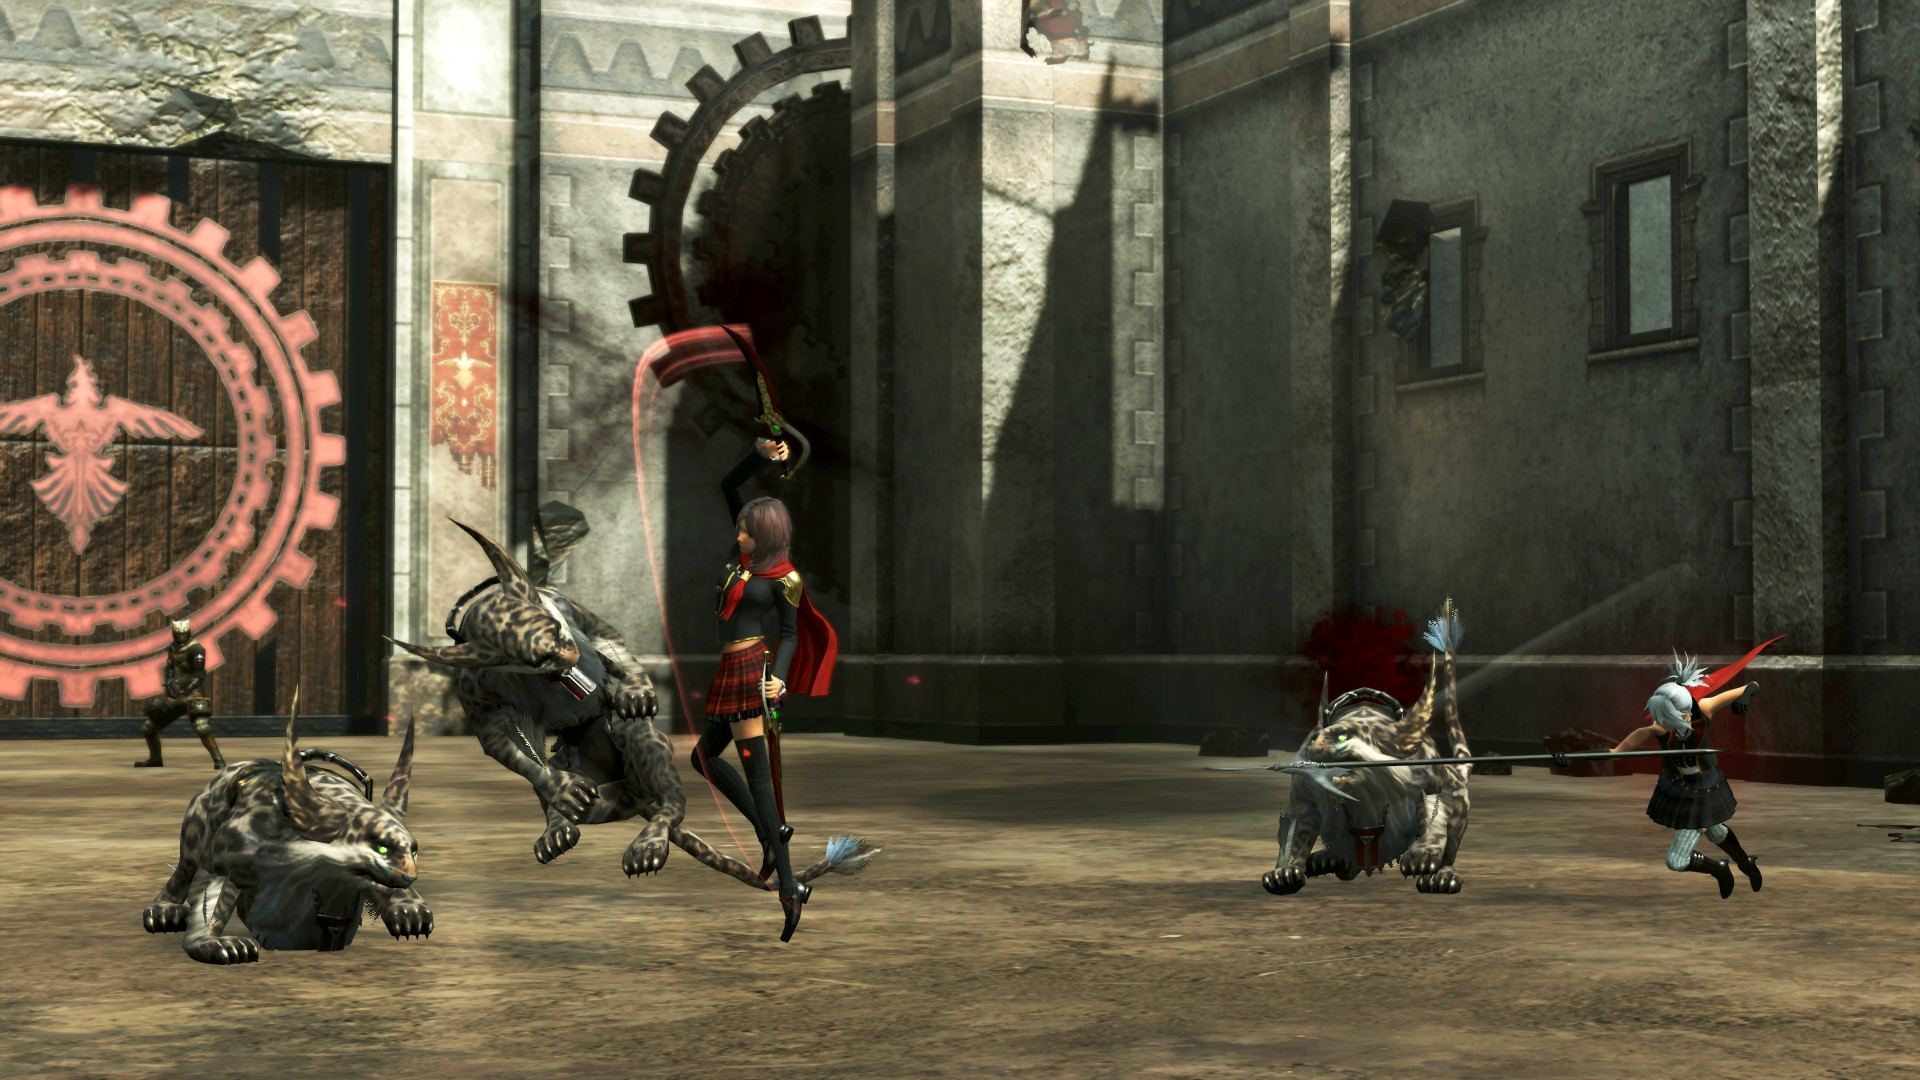 FINAL FANTASY TYPE-0 HD (STEAM KEY ROW / REGION FREE)